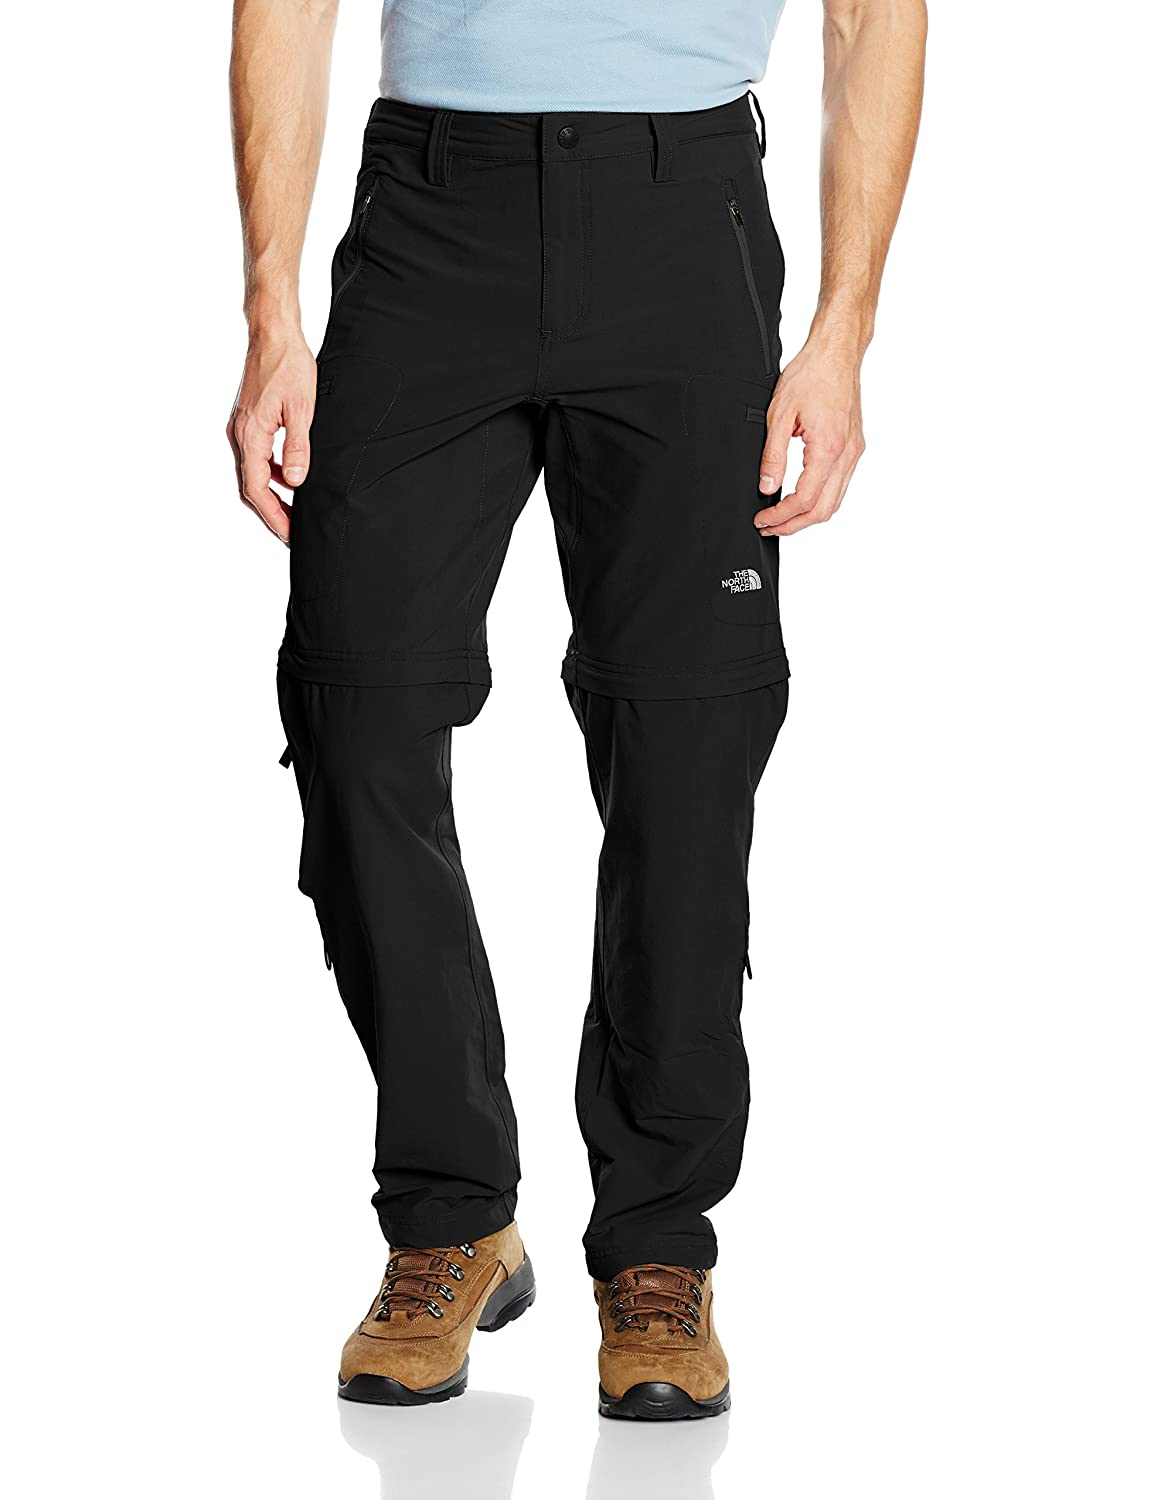 The North Face Herren Hose Exploration Convertible